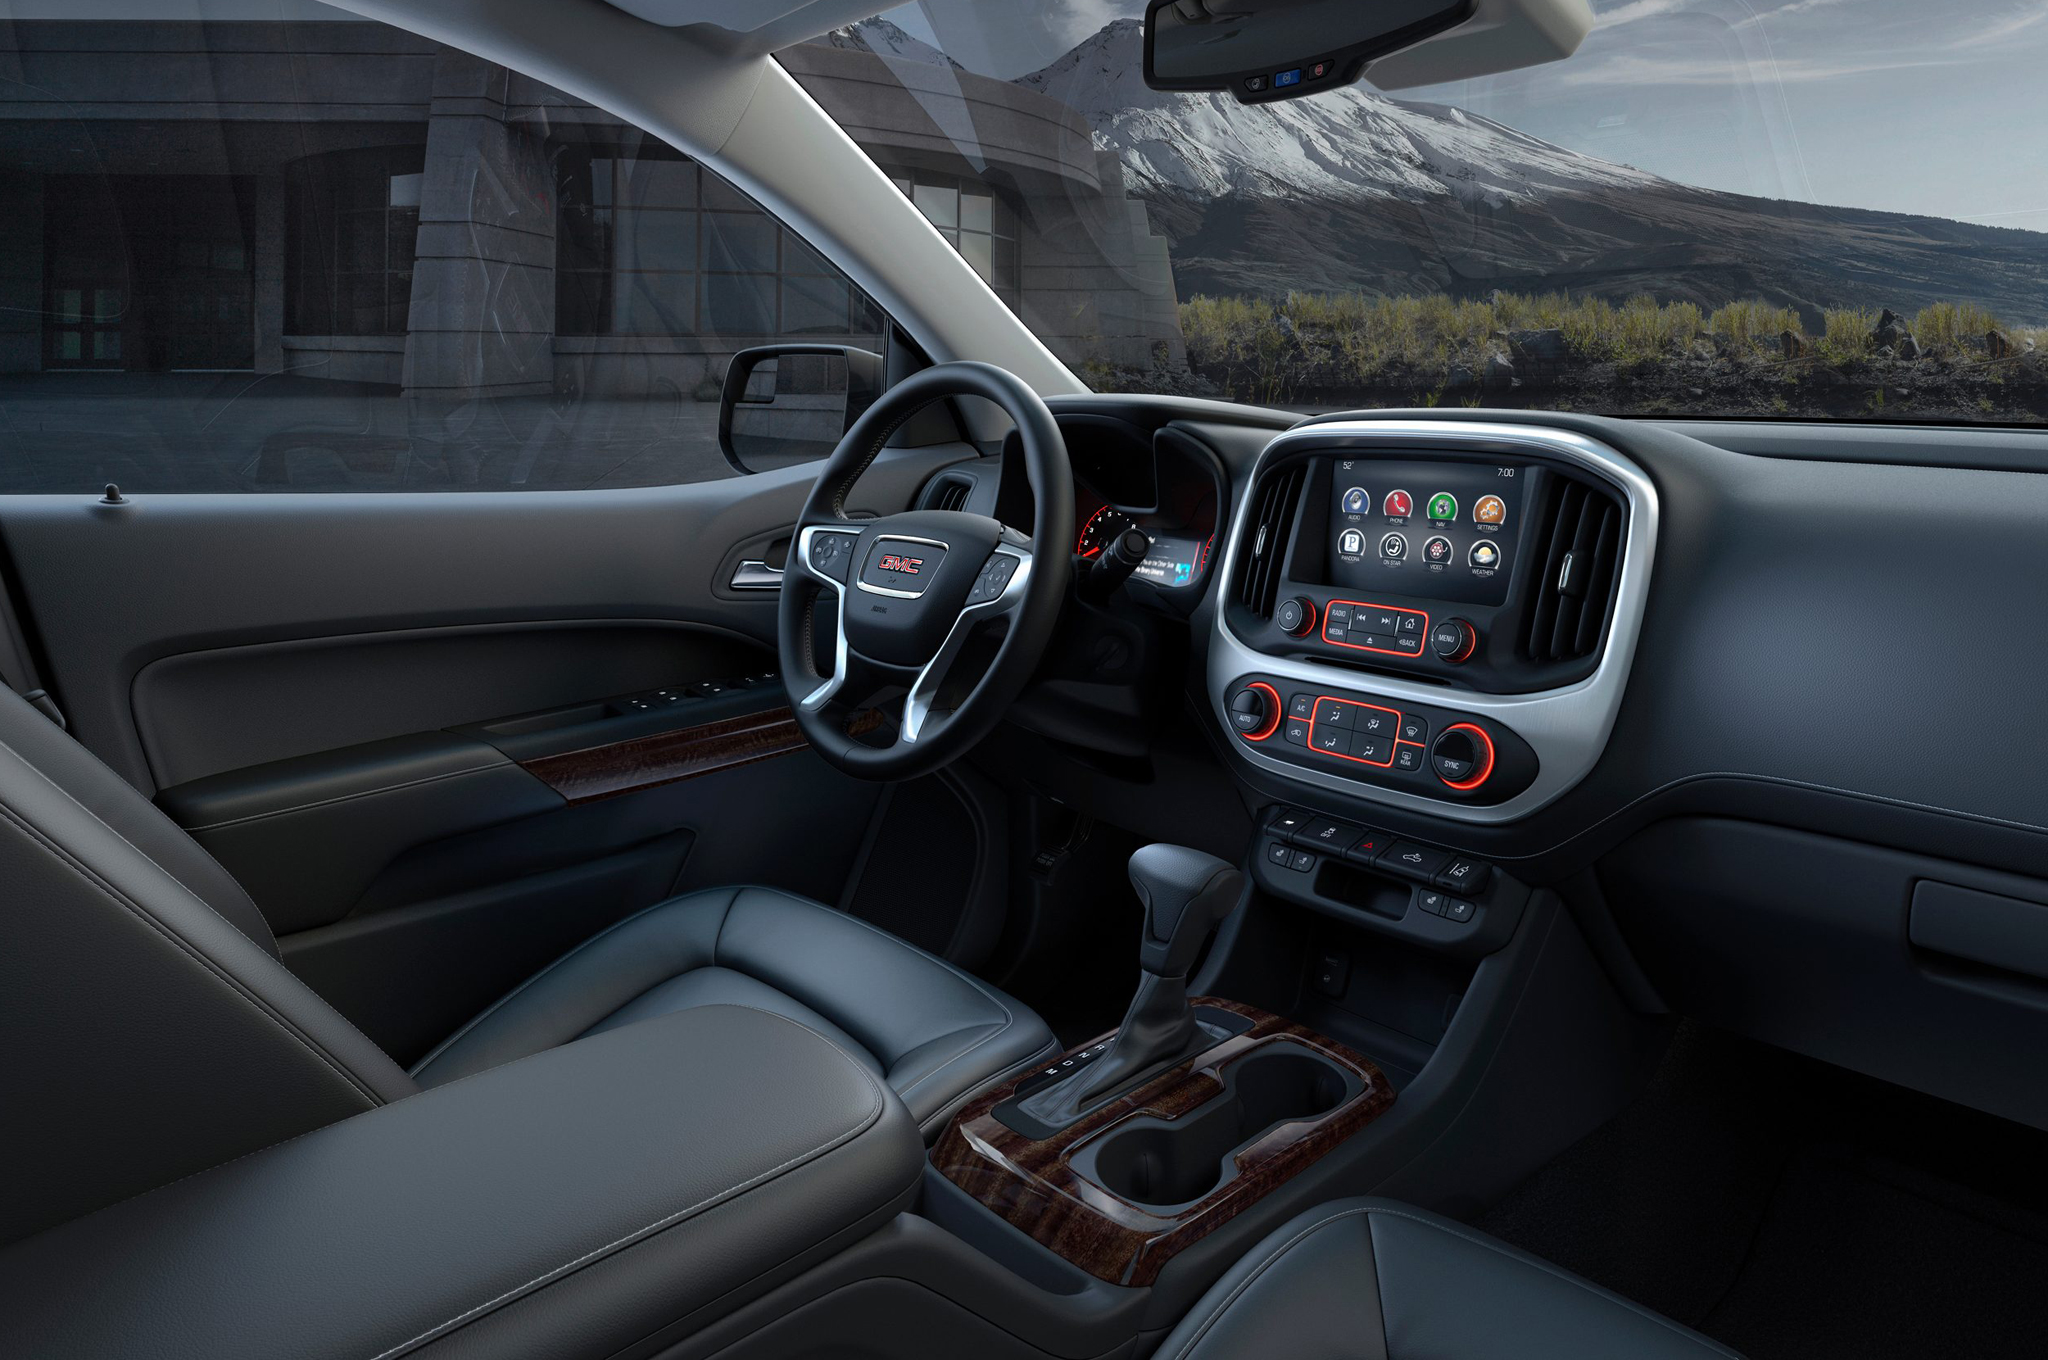 2015 Gmc Canyon Front Seat Interior (Photo 5 of 6)